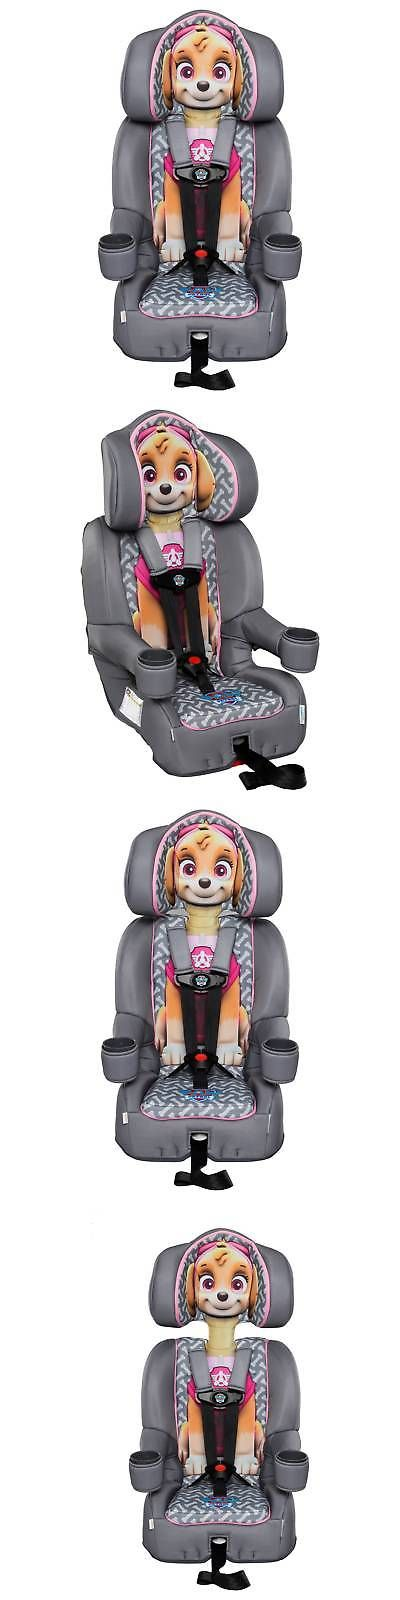 Booster to 80lbs 66694: Kidsembrace Nickelodeon Paw Patrol Skye Combination Harness Booster Car Seat -> BUY IT NOW ONLY: $127.49 on eBay!